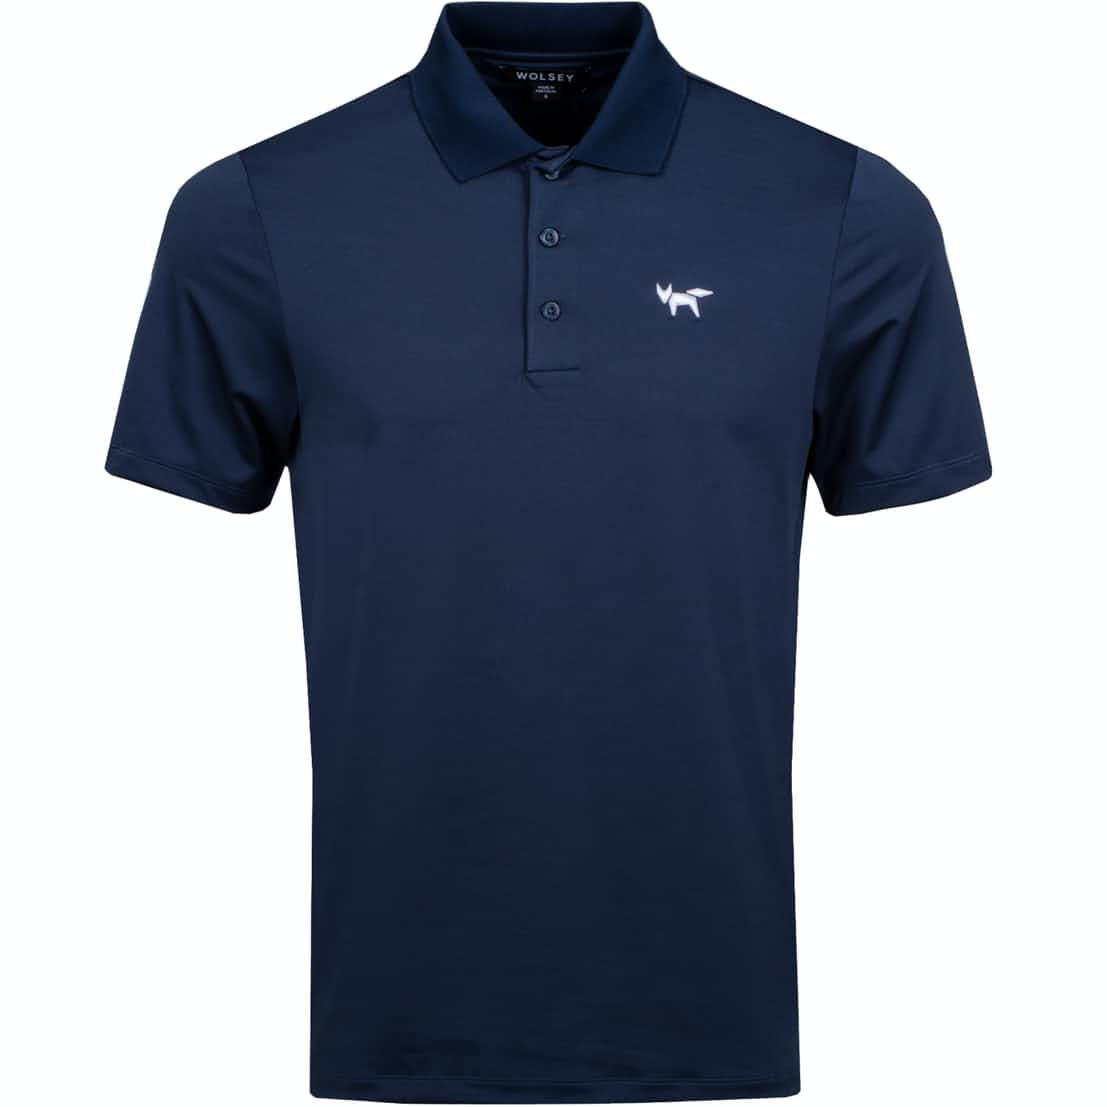 Hillwell Classic Technical Polo Total Eclipse - AW19